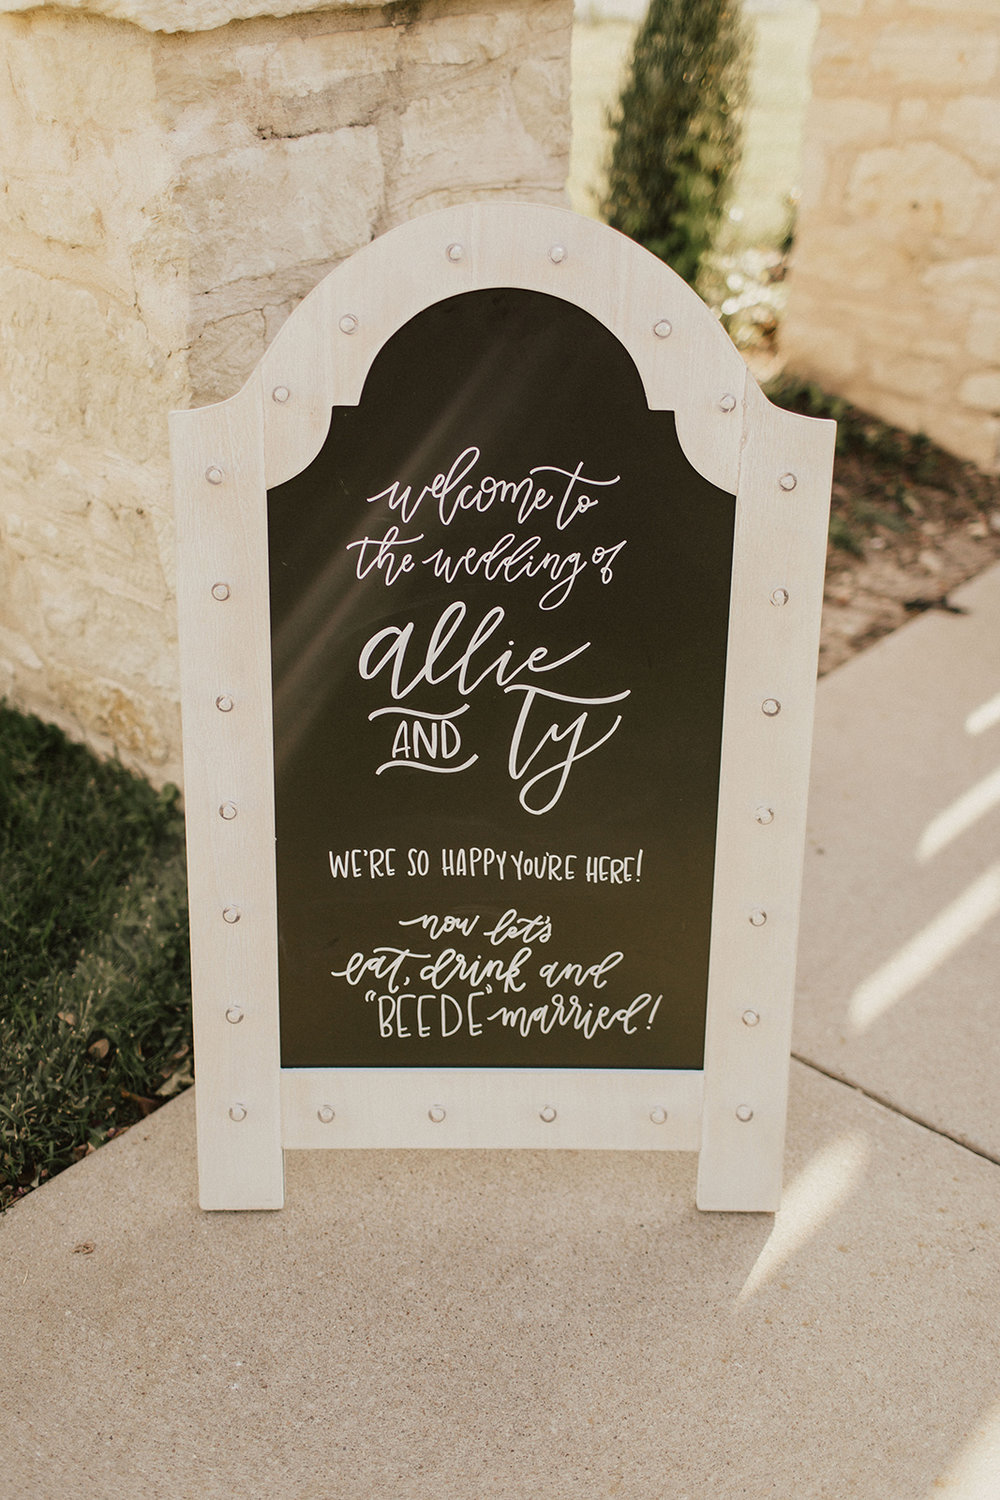 allie-tyler-vintage-villas-austin-texas-wedding-photographer-325.jpg